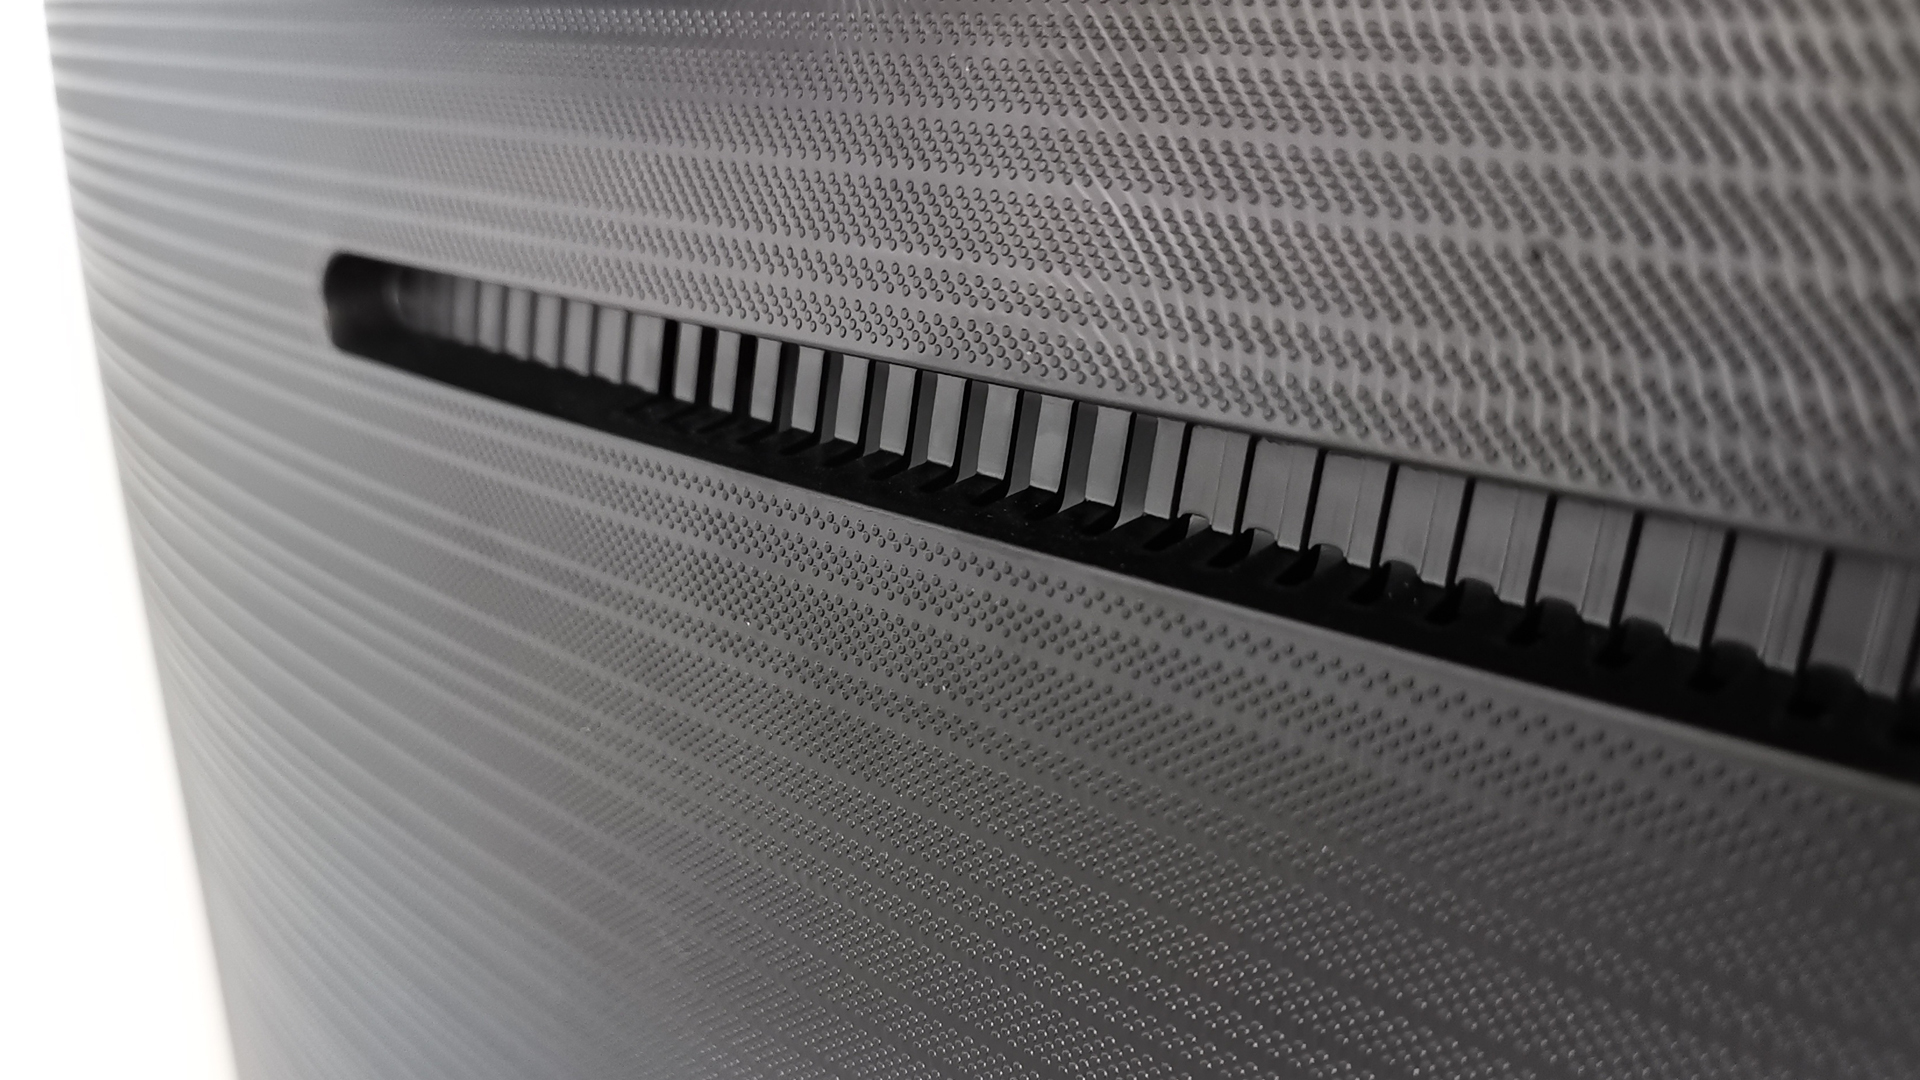 The back panel of the Samsung Q80T QLED TV